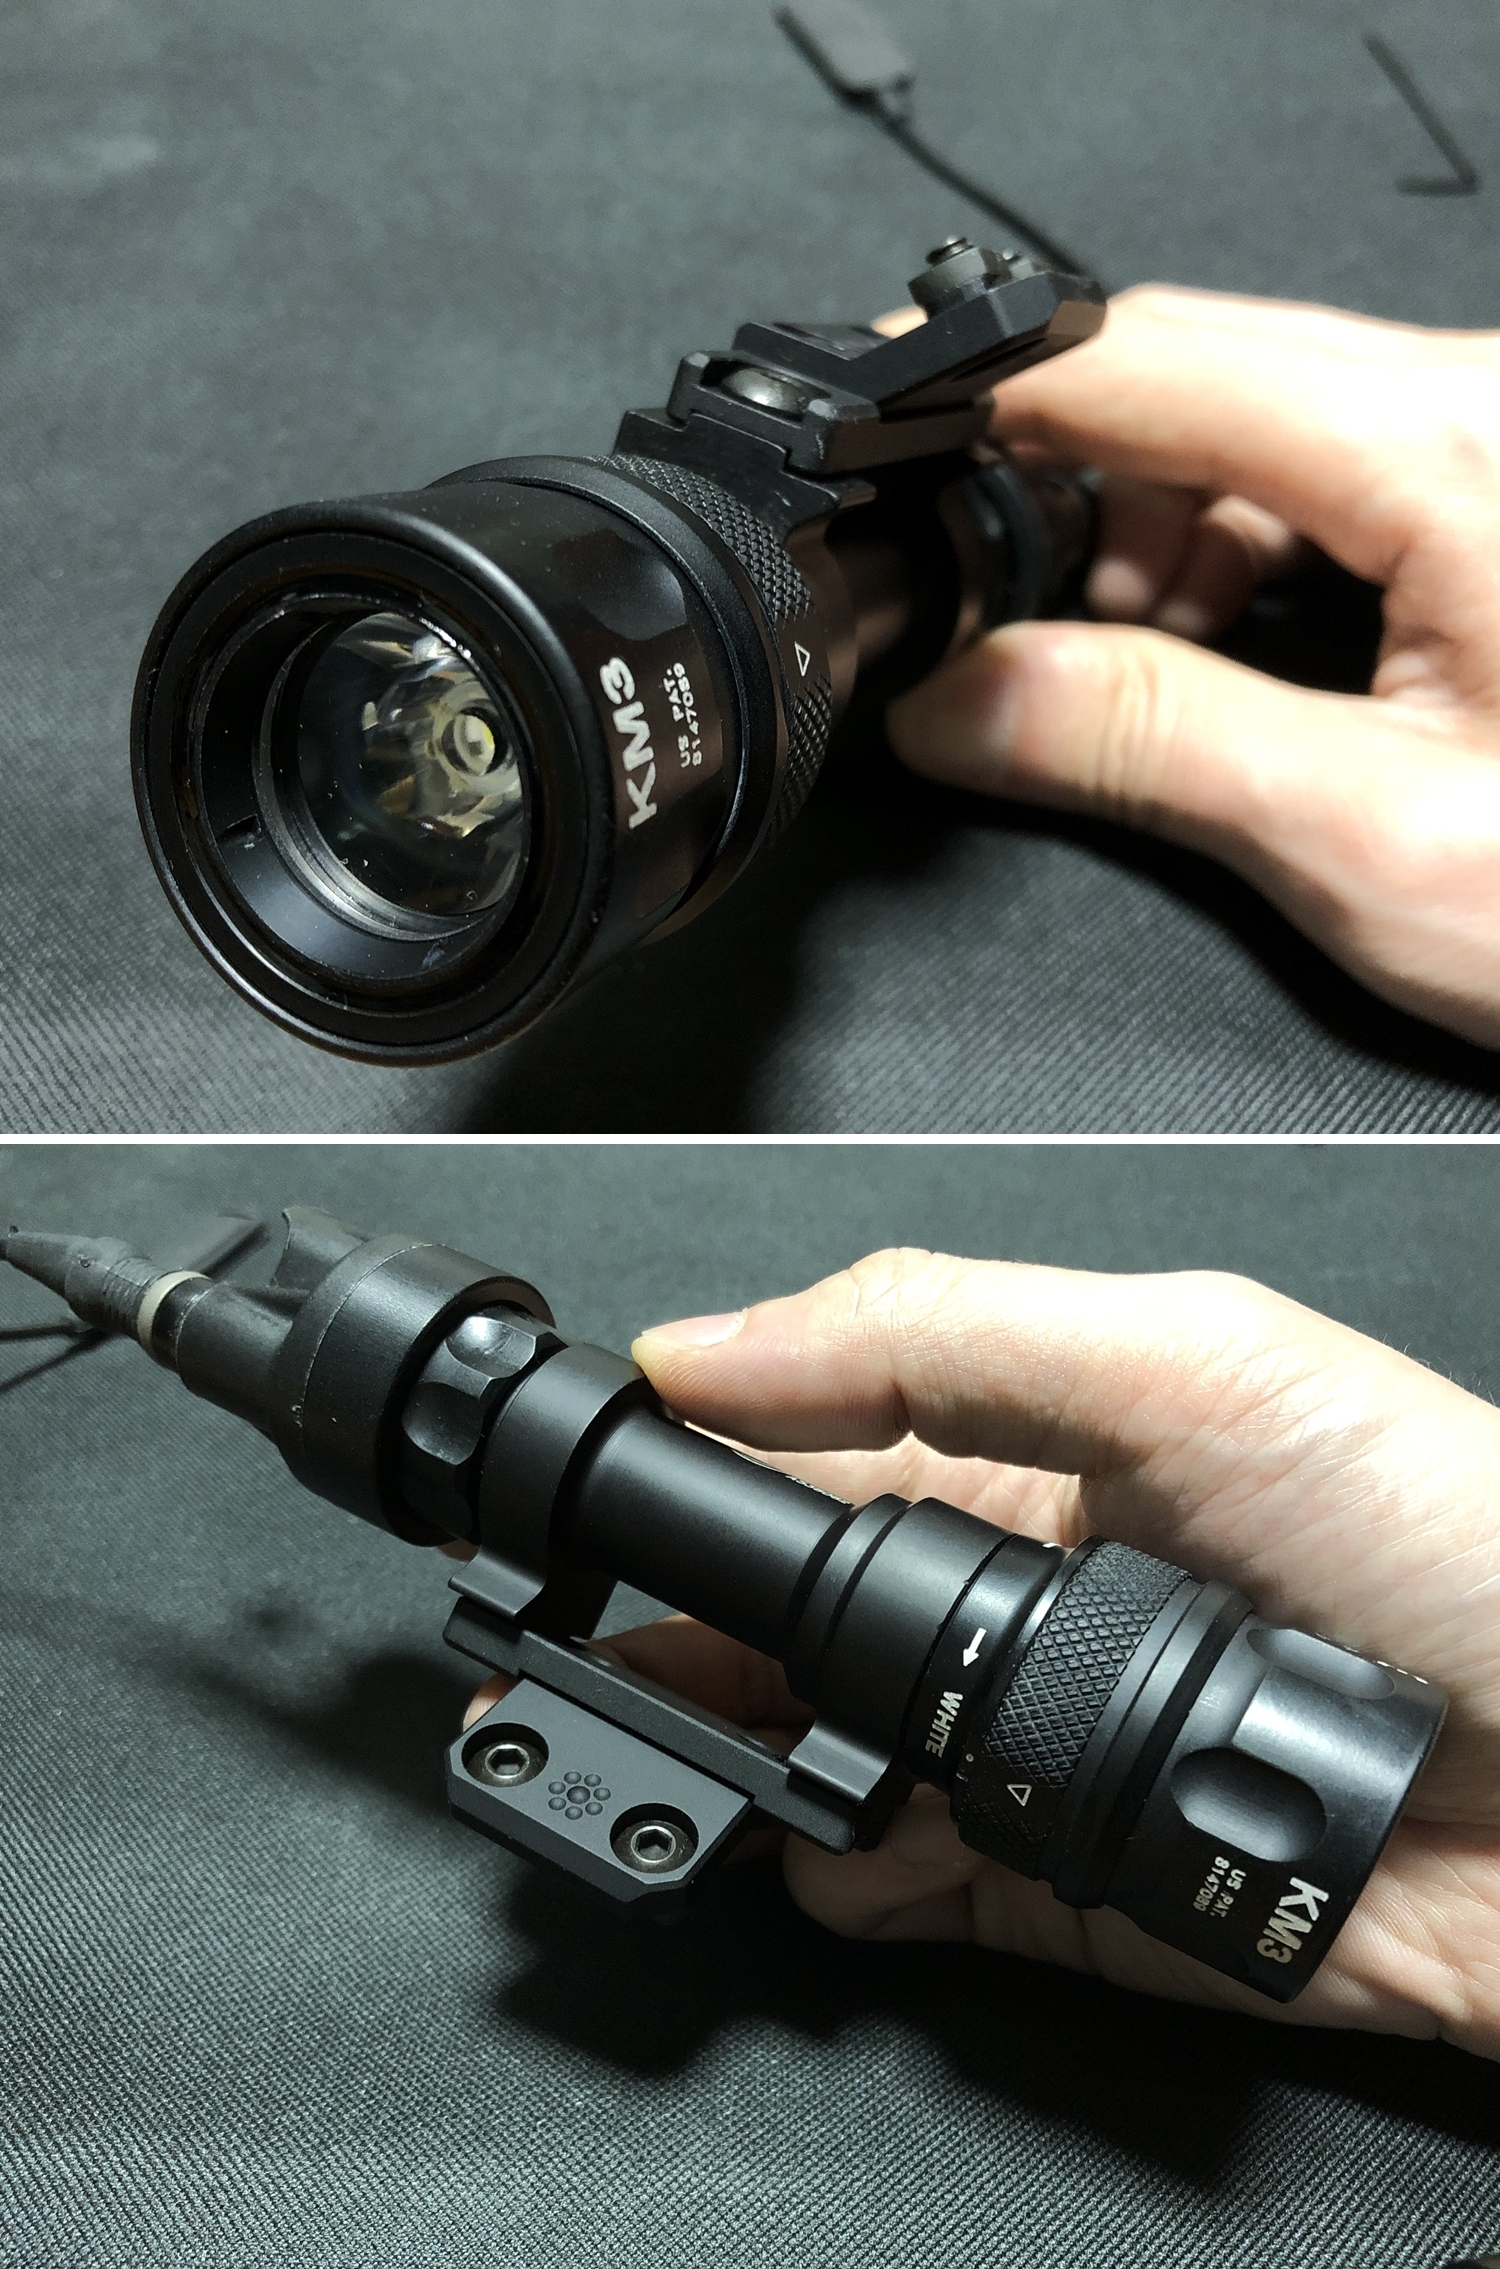 15 実物 ARISAKA DEFENSE LLC OFFSET M620 ADAPTER & SCOUT MOUNT M-LOK & SUREFIRE M952V 実物 アリサカ